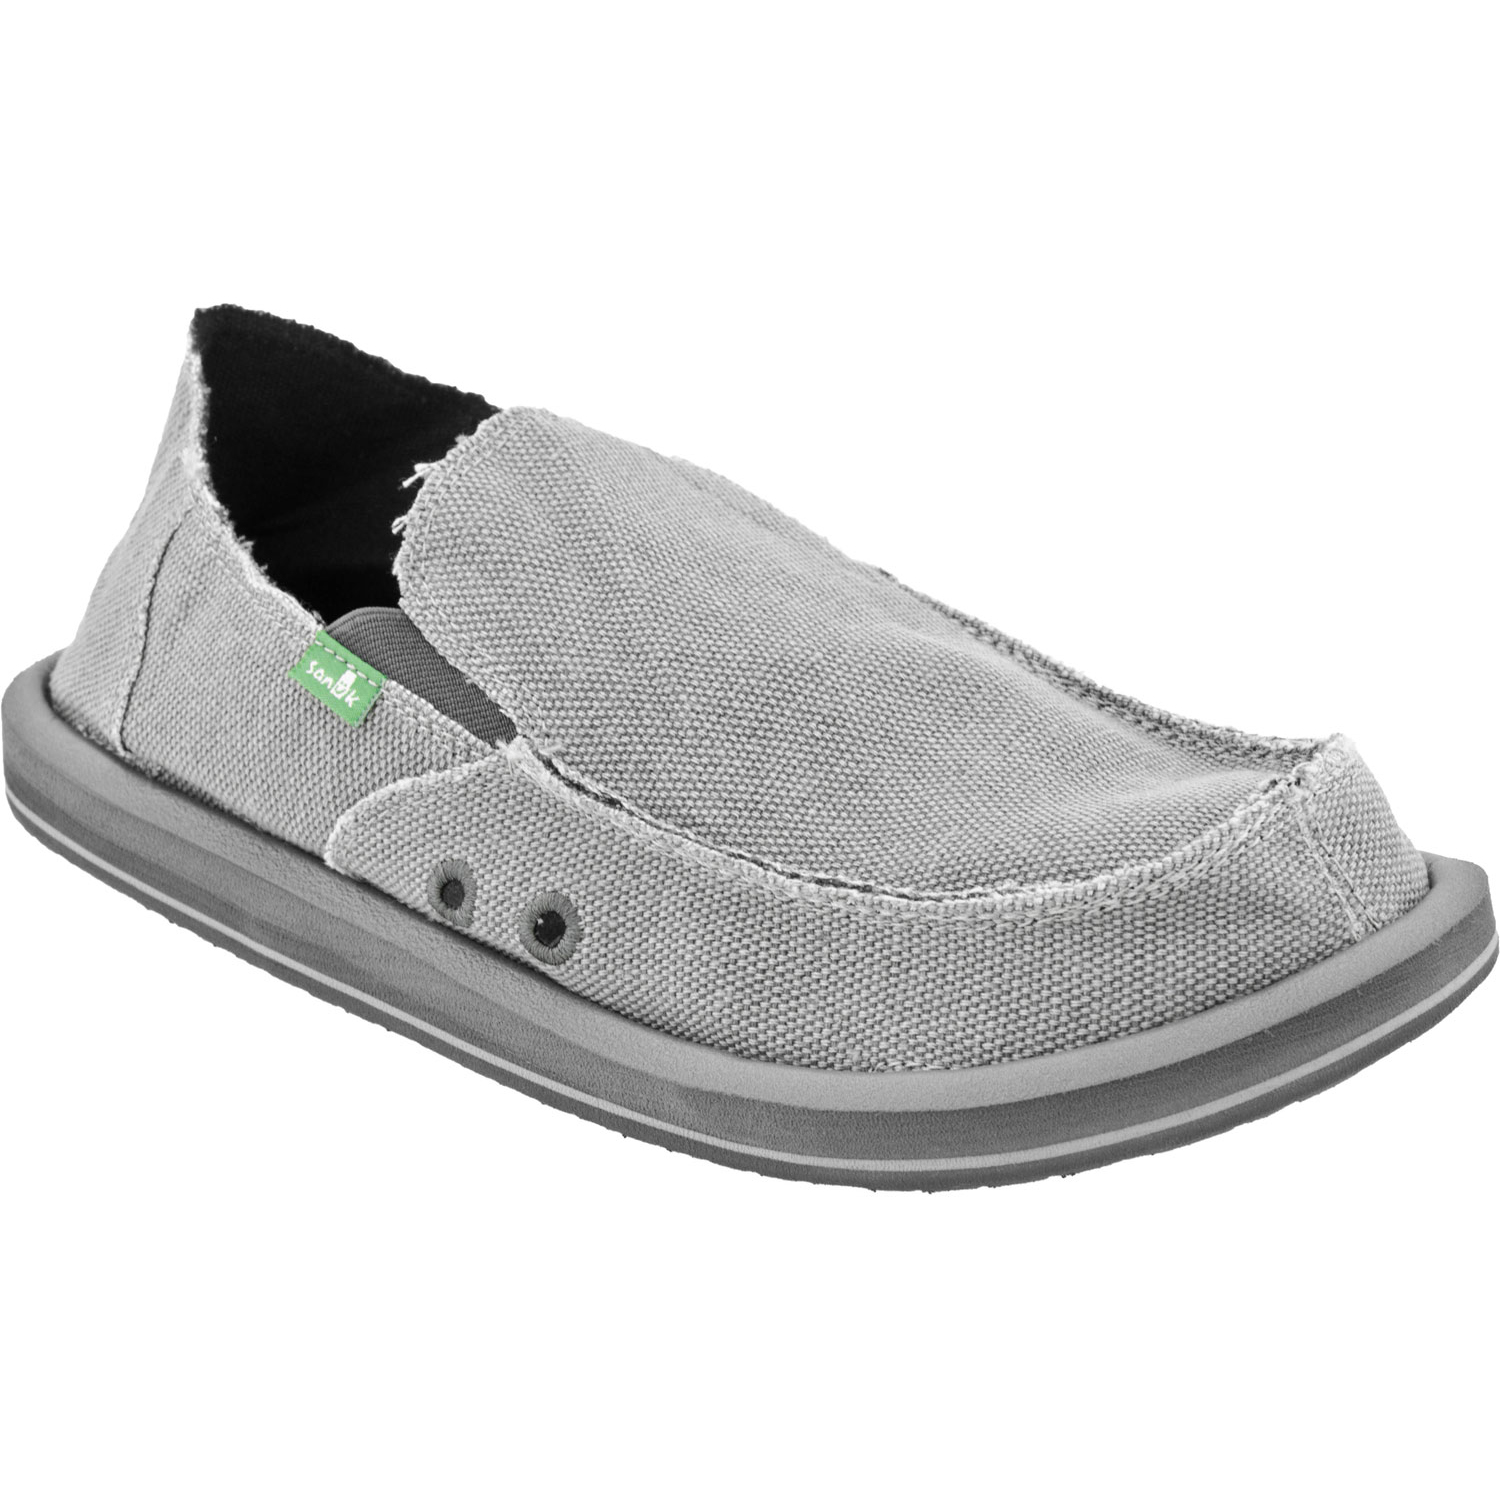 Sanuk Men's Vagabond Shoes | eBay